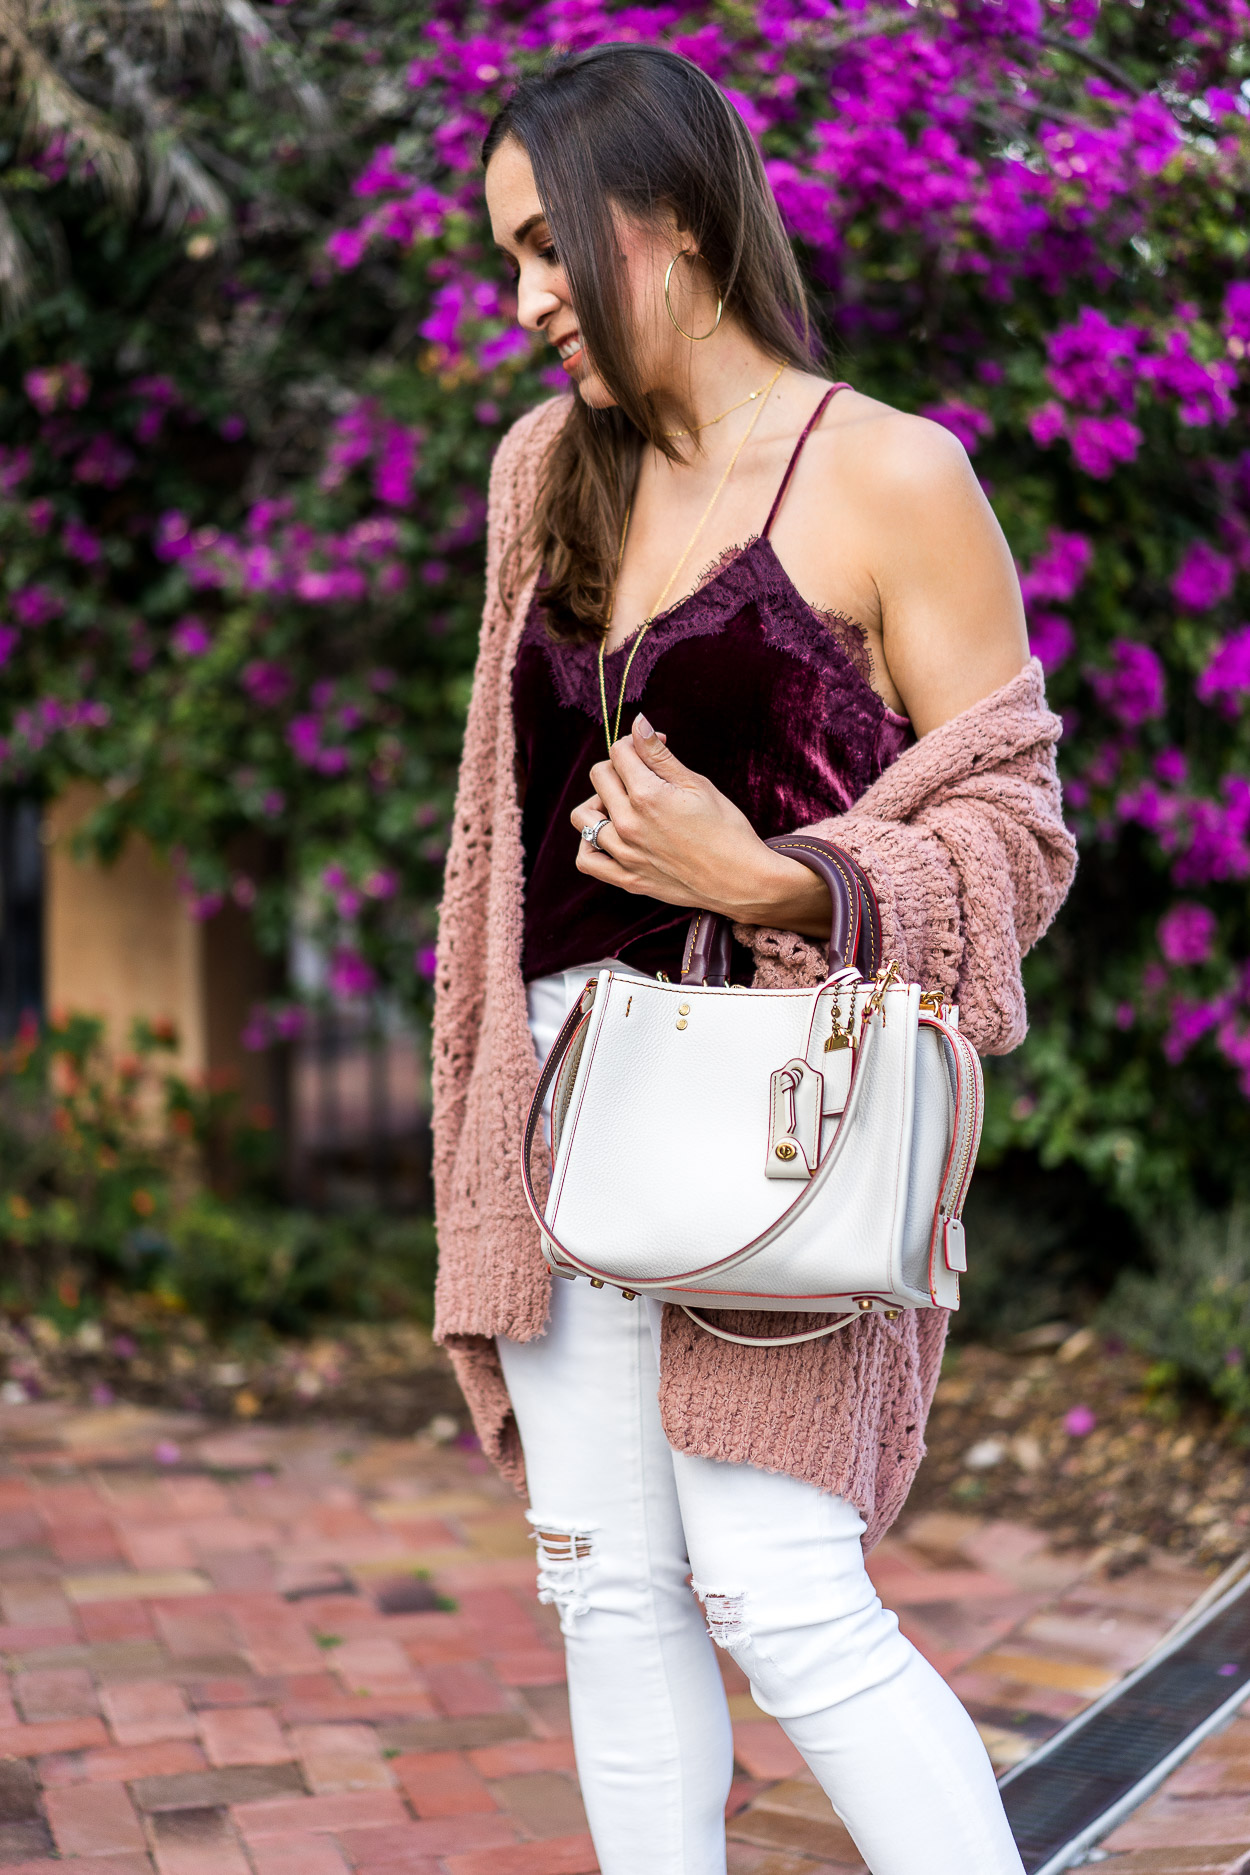 Coach Rogue bag styled with blush cardigan and velvet cami by AGlamLifestyle blogger